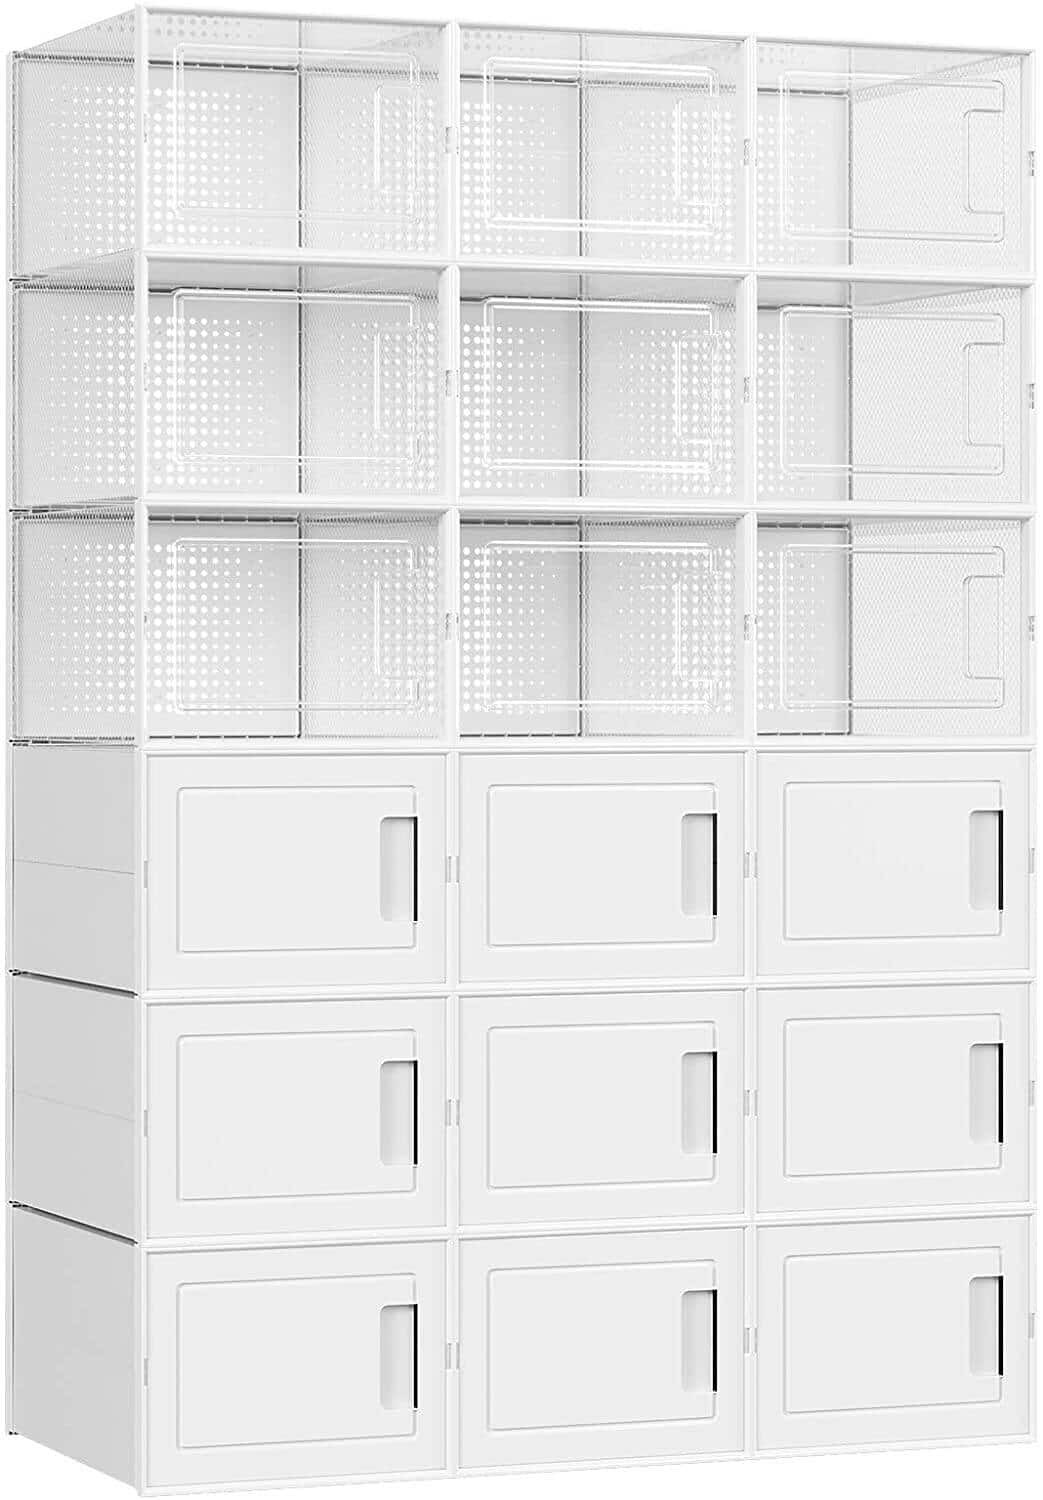 SONGMICS Shoe Boxes/Storage Organizers, Set of 10 for $33.99, Set of 18 for $50.99 + FSSS